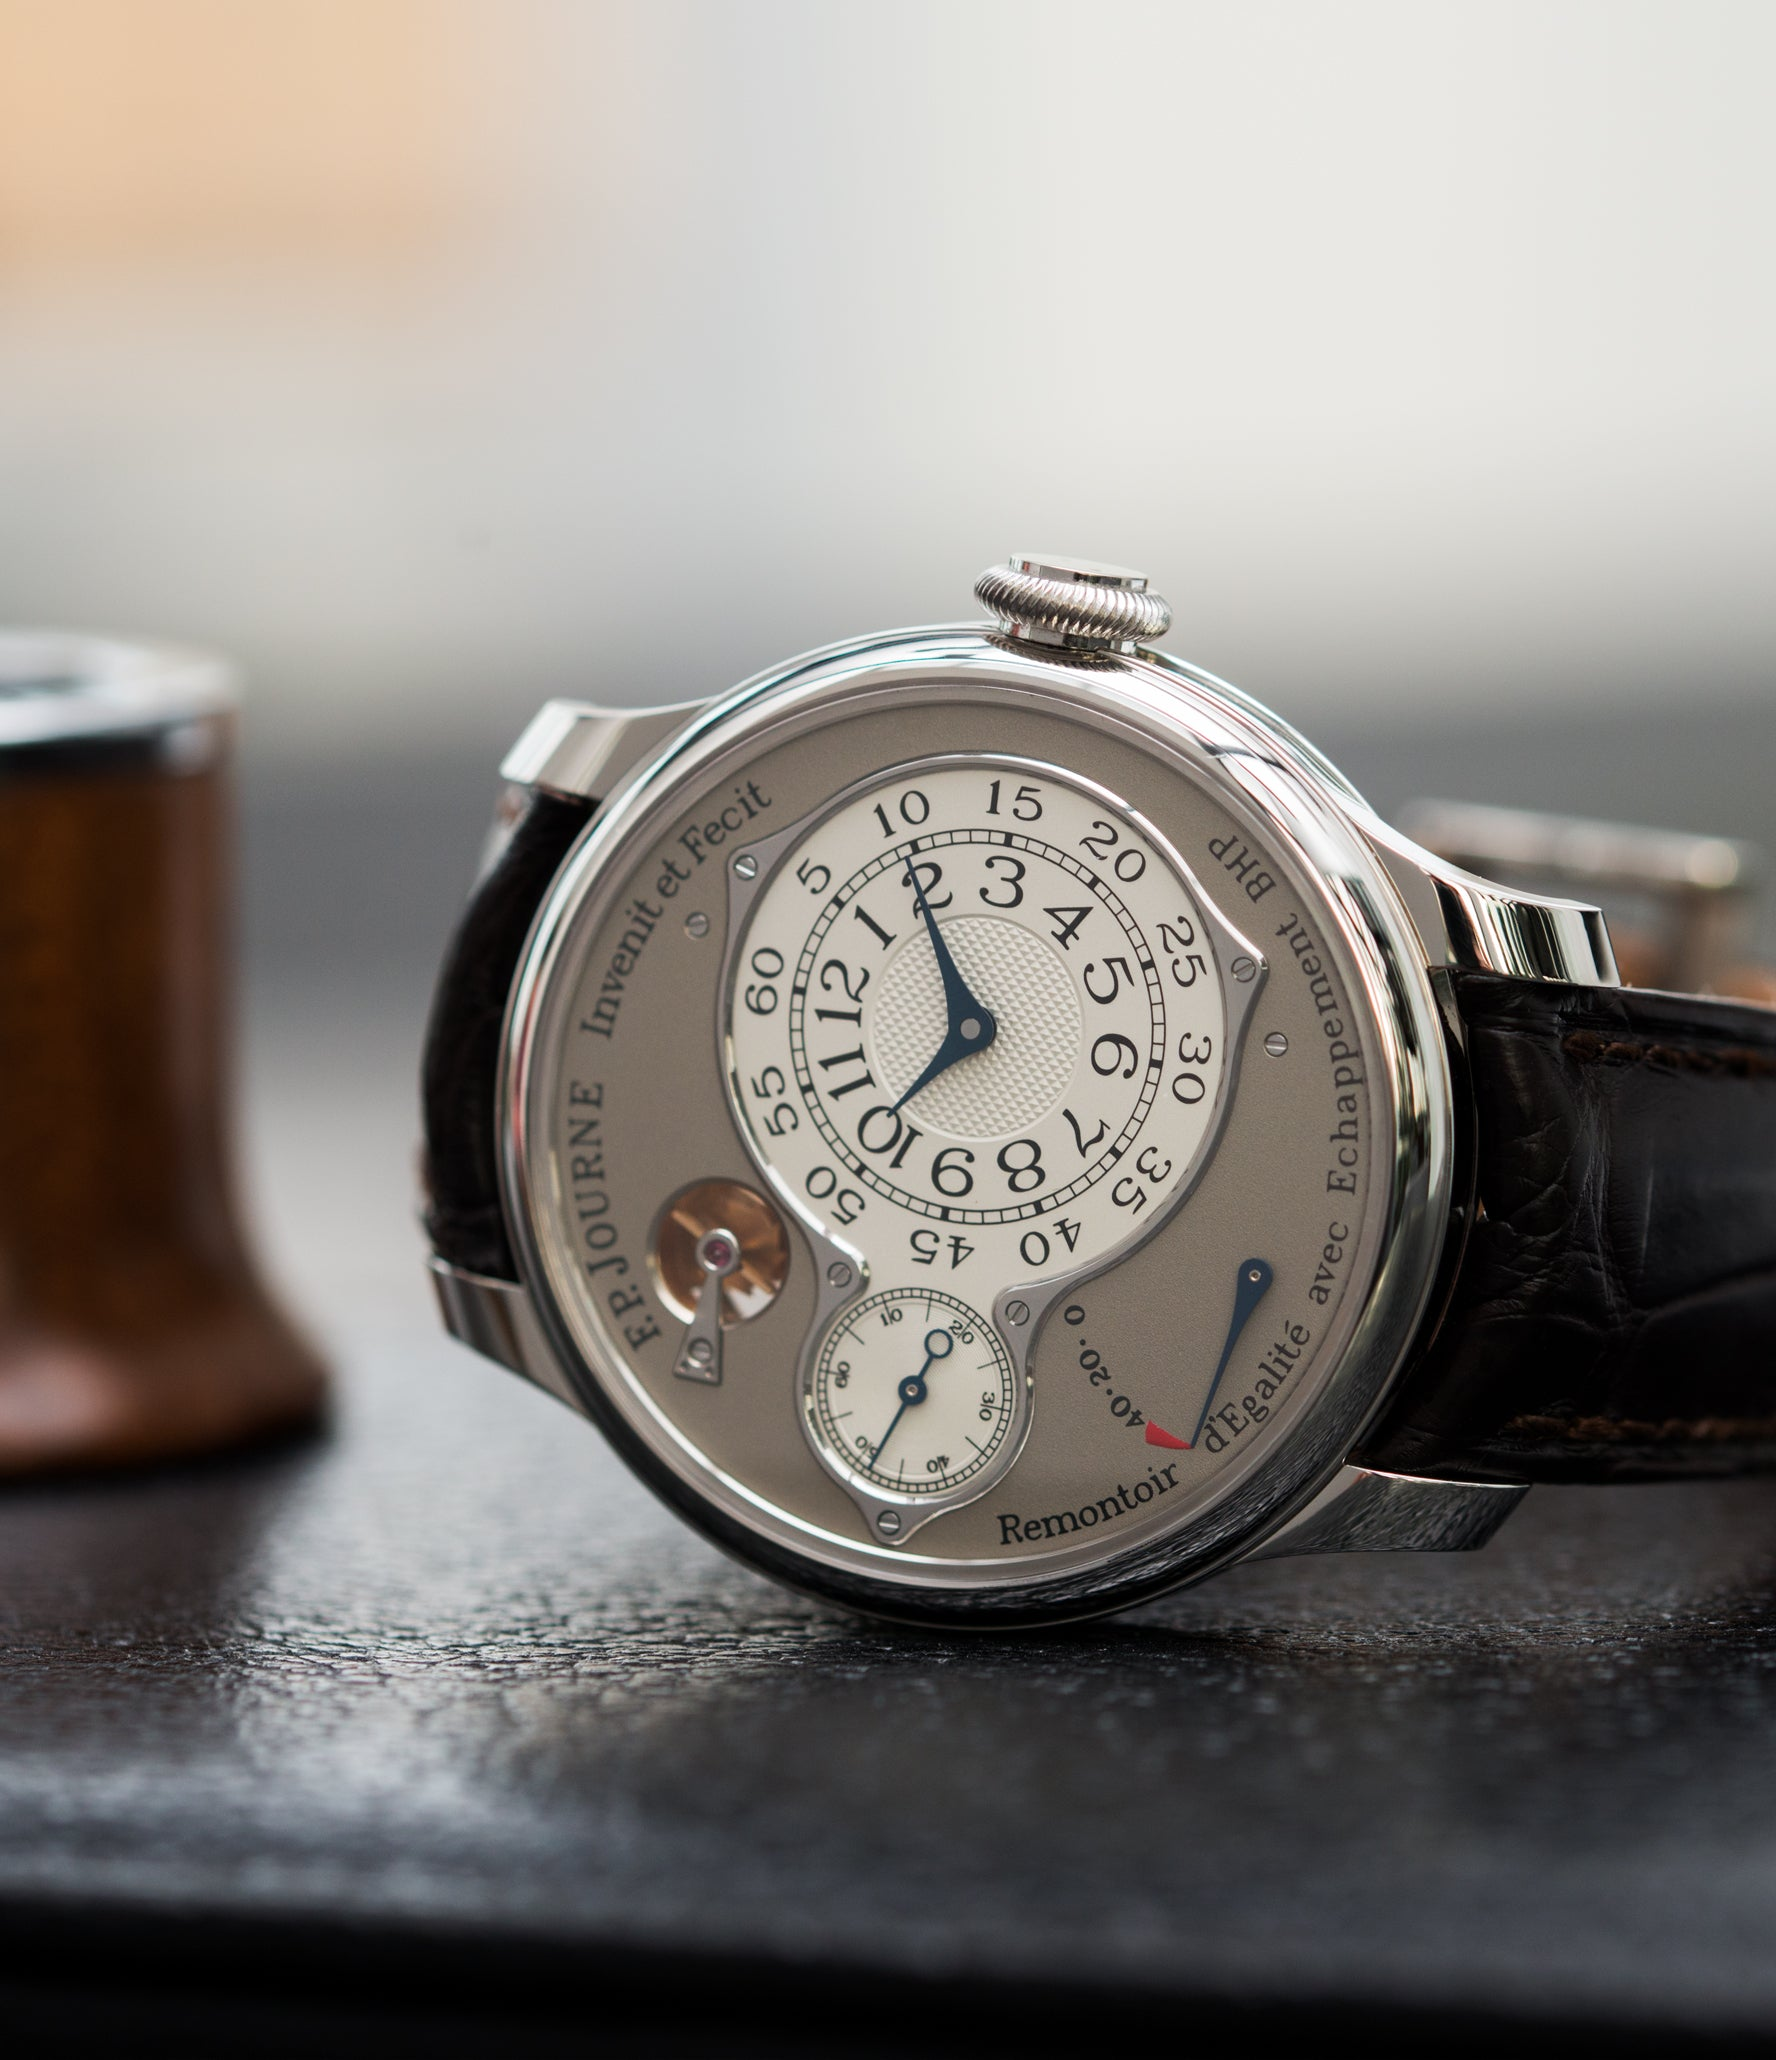 platinum preowned F. P. Journe Chronometre Optimum platinum rare watch for sale online at A Collected Man London approved retailer of independent watchmakers